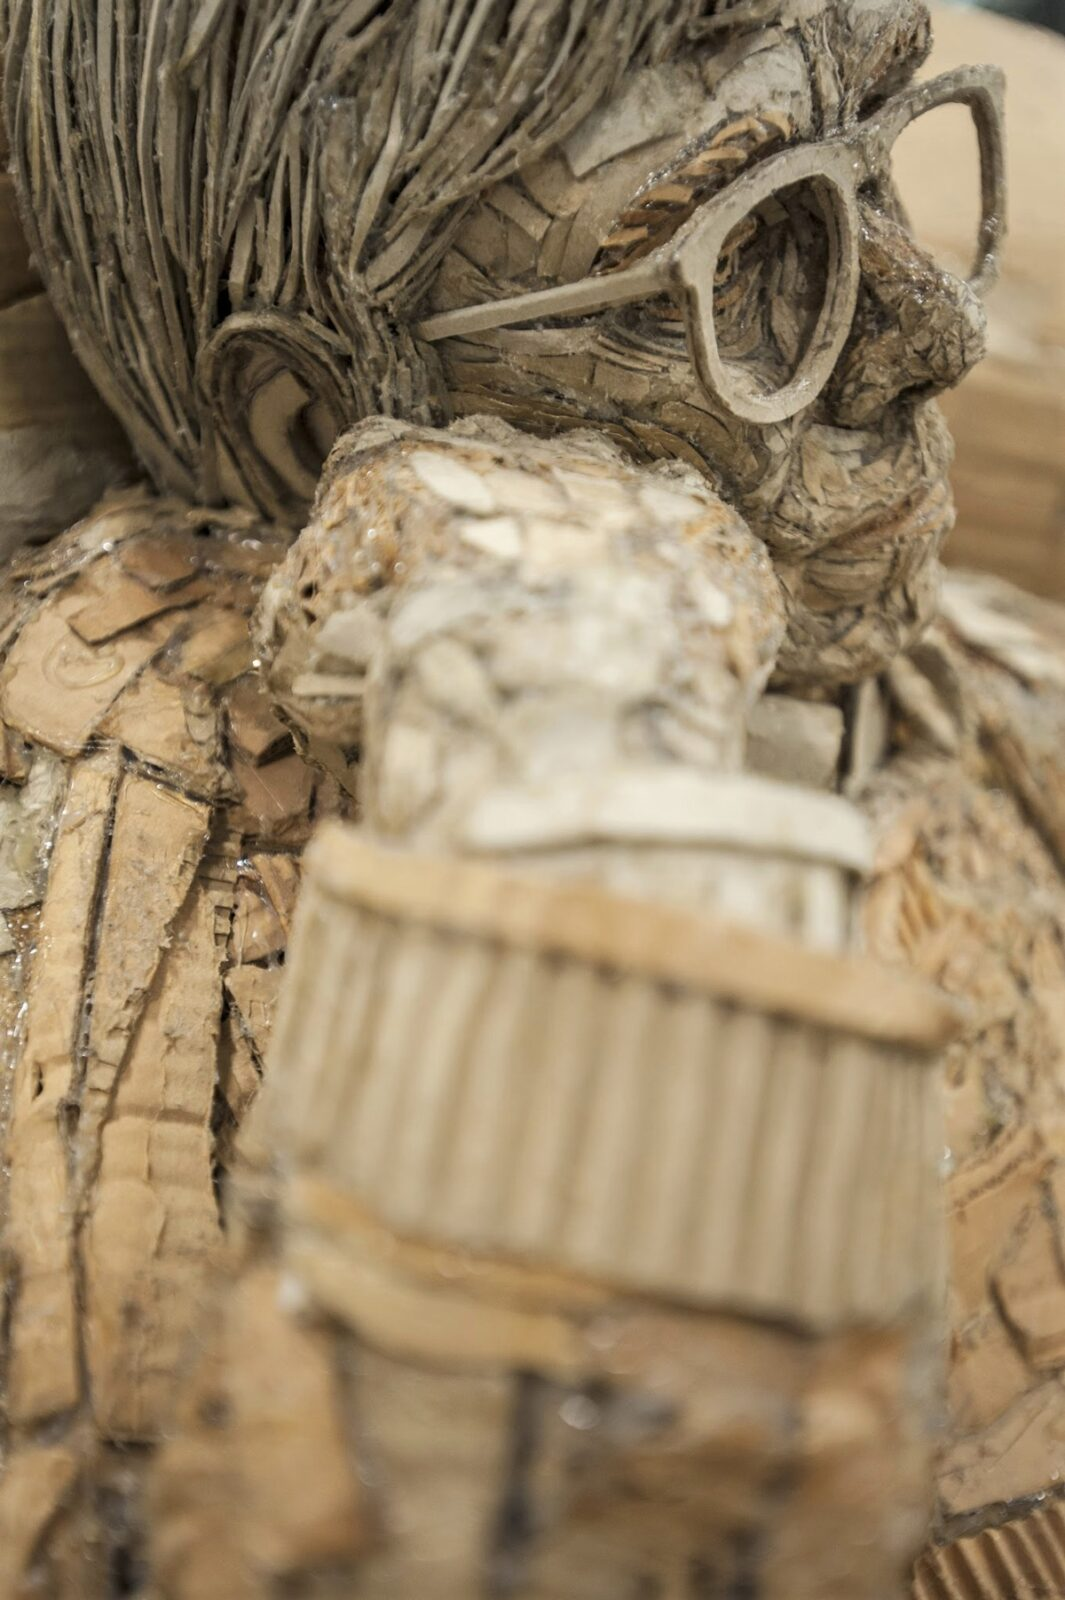 Figurative 'Emotional' Sculptures From Recycled Cardboard